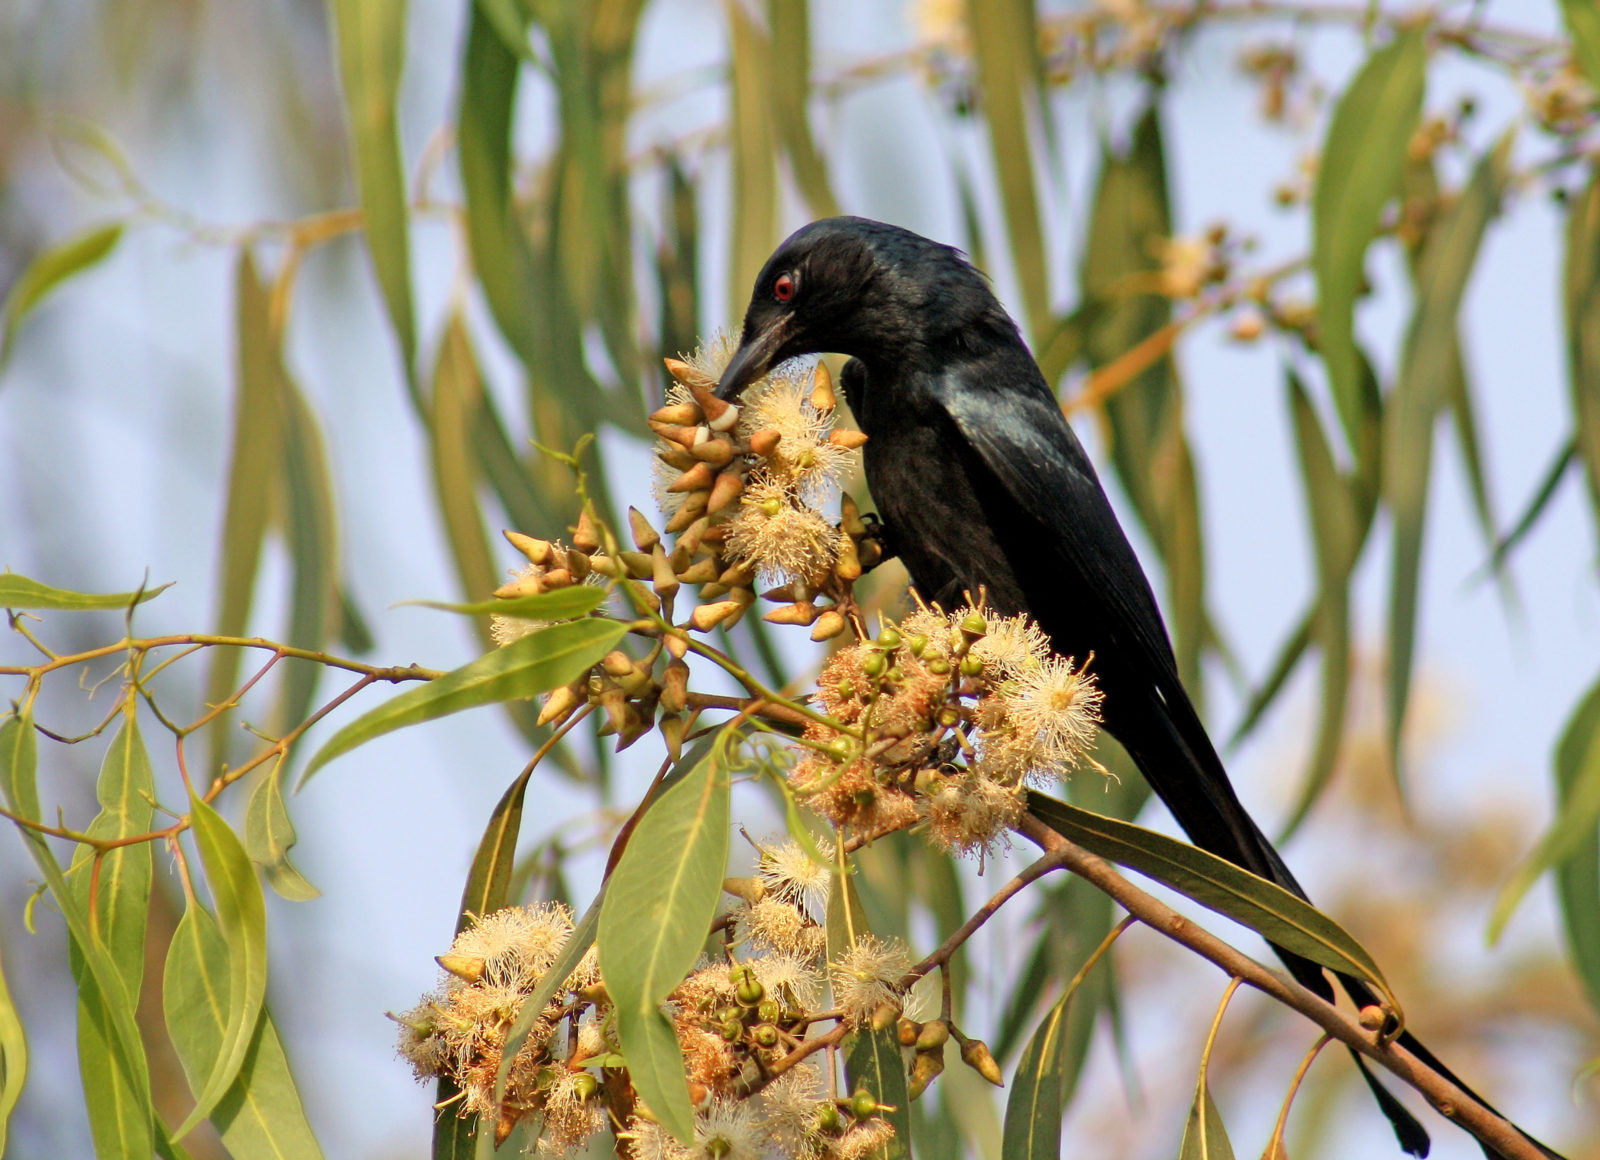 THE DRONGO ON EUCALYPTUS FLOWERS